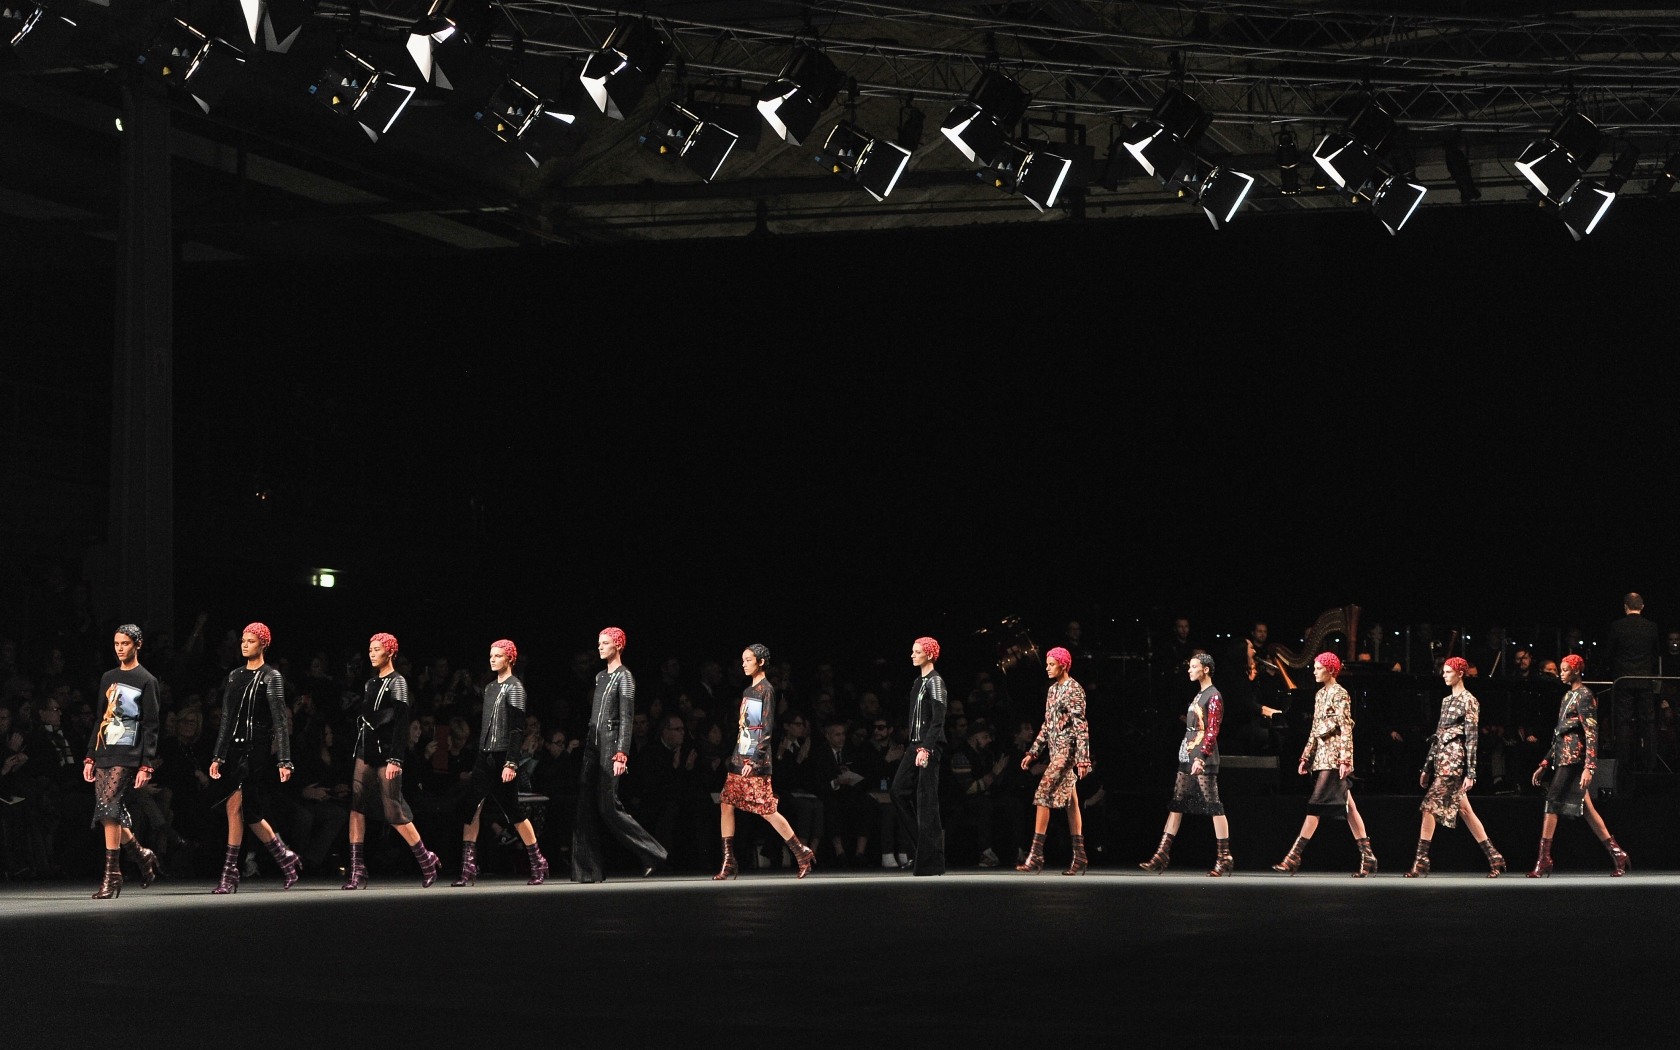 download Givenchy fashion show wallpapers and images 1680x1050